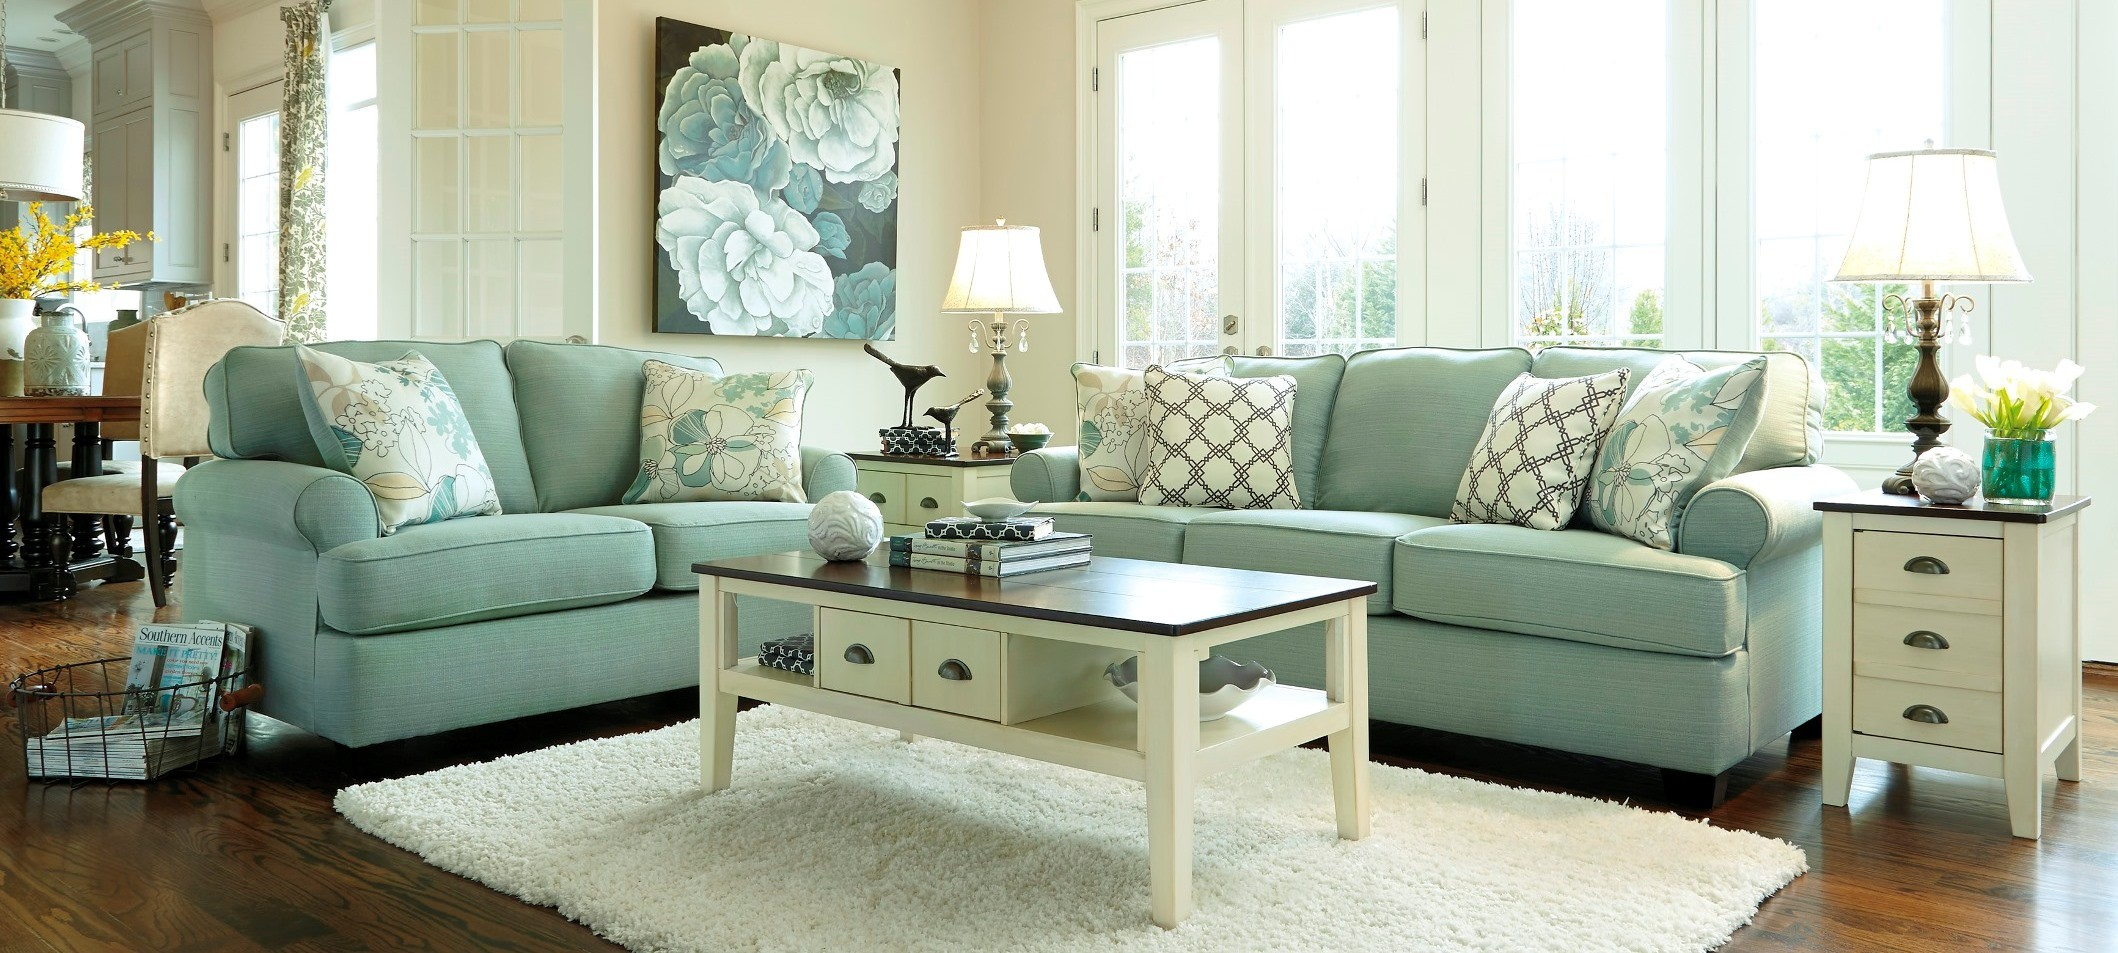 Daystar Living Room Set From Ashley 28200 38 35